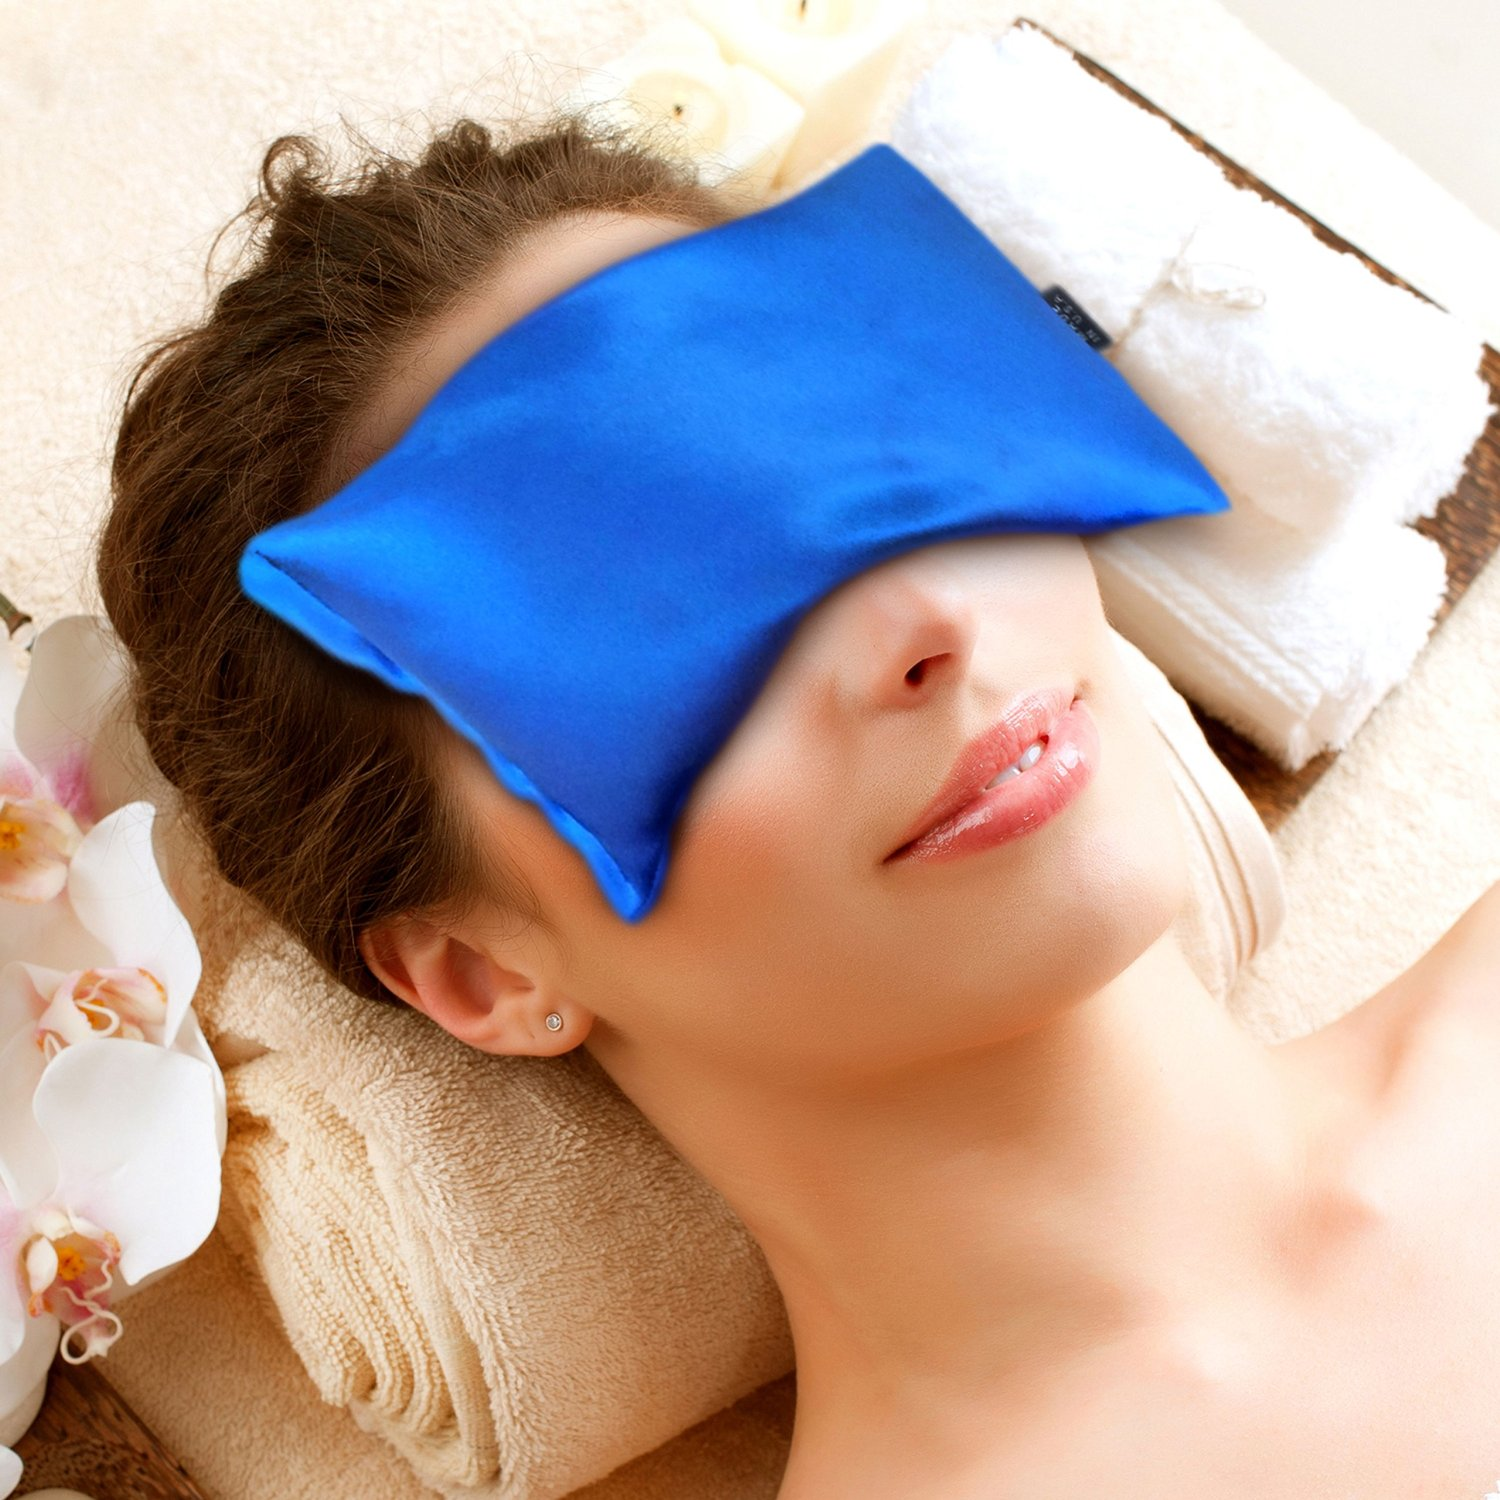 11 Must Have Items for Relaxation | www.onecrazyhouse.com